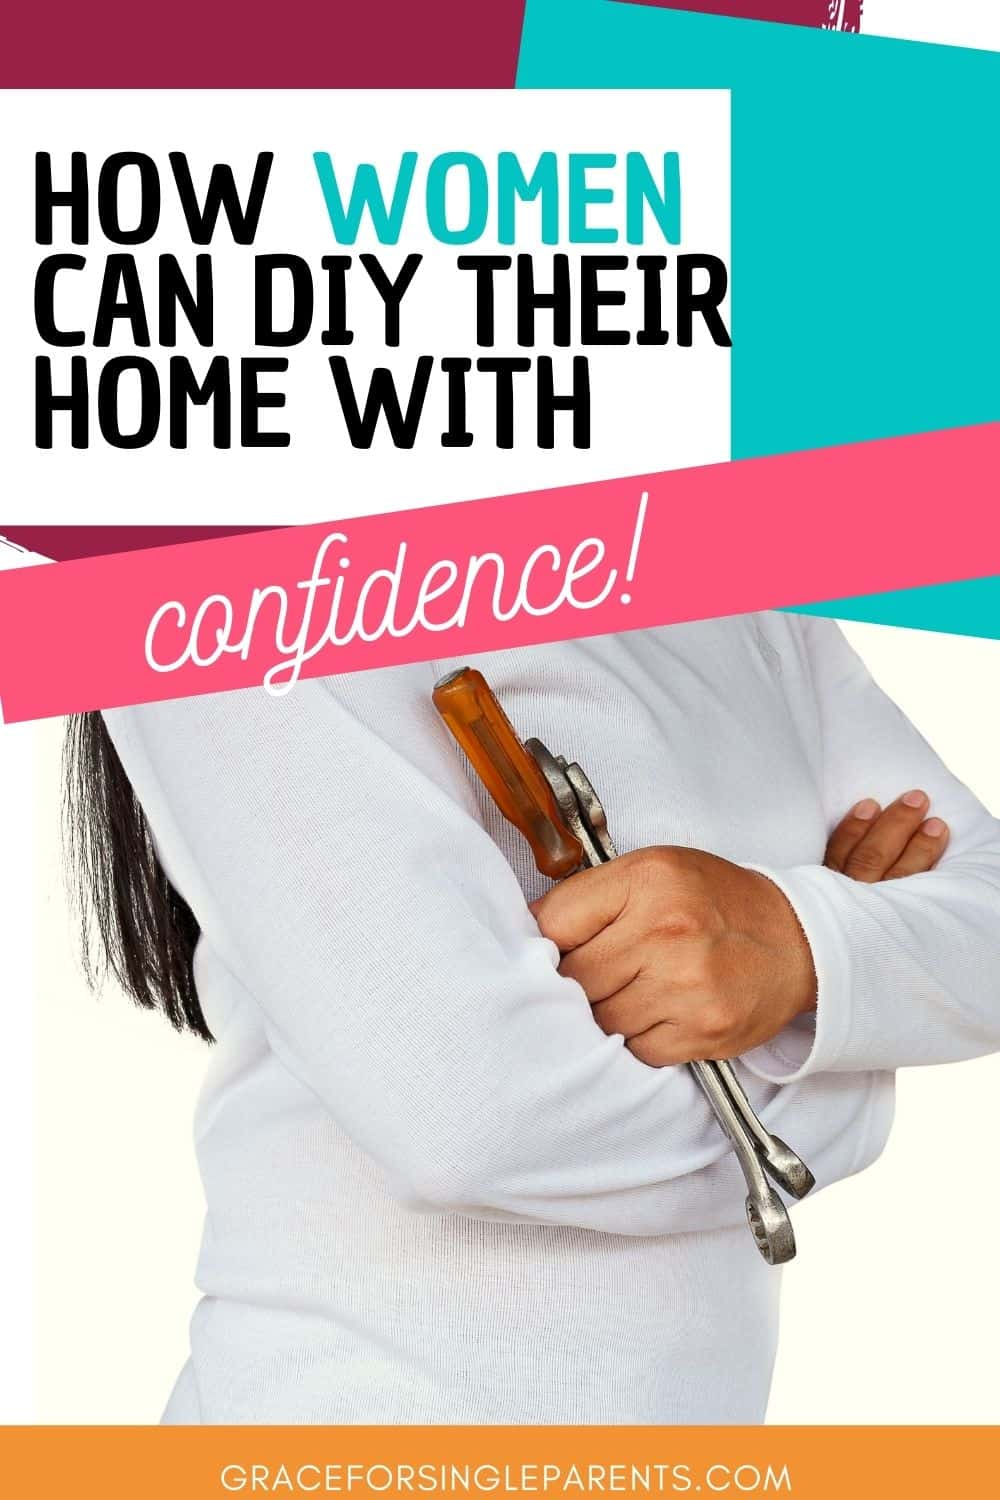 How Women Can DIY Their Home Maintenance with Confidence